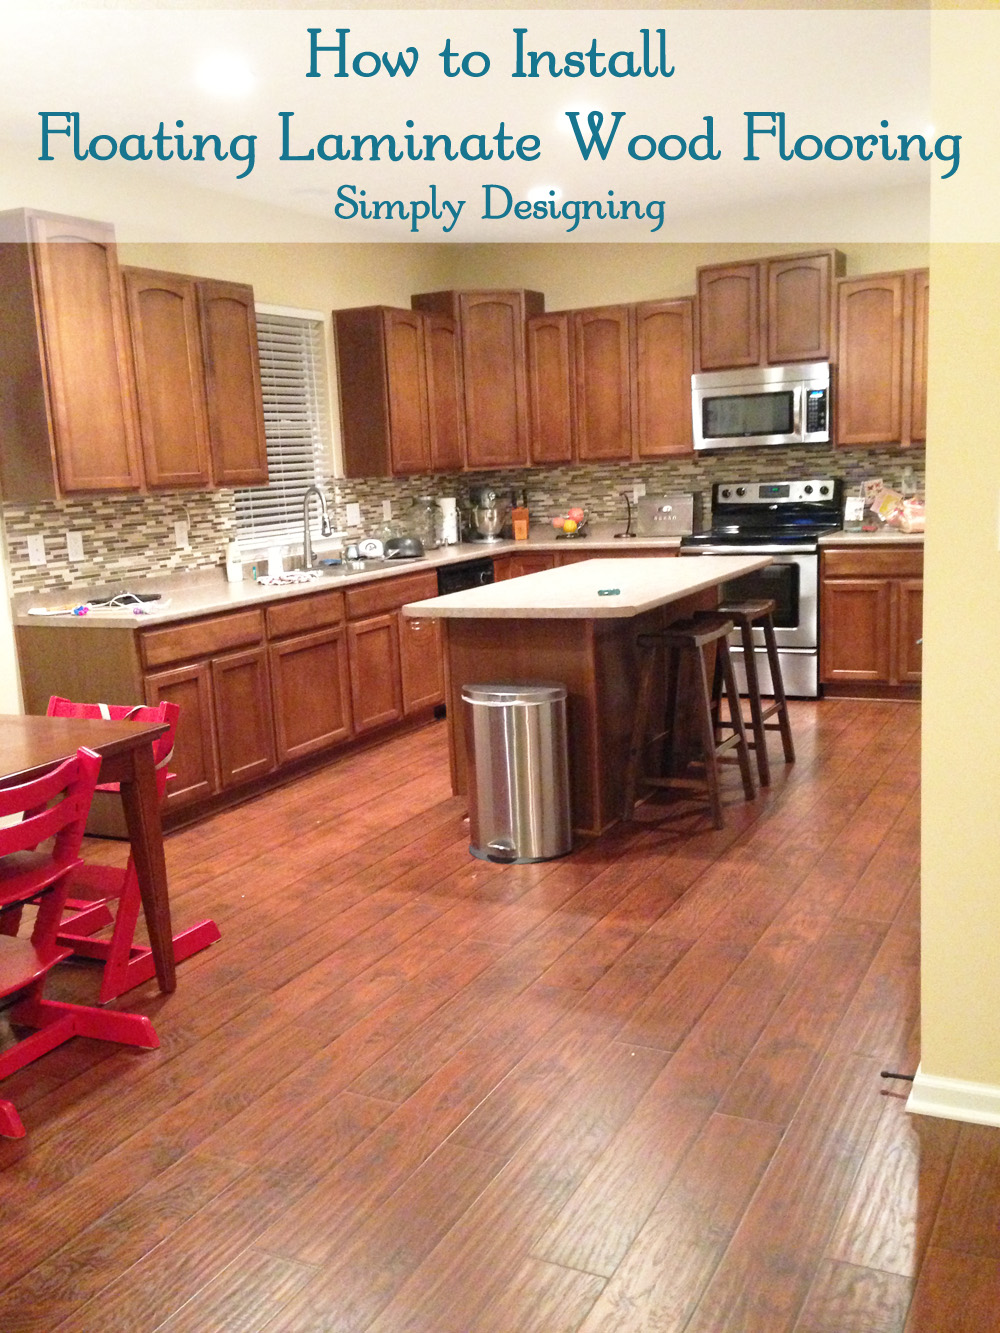 Great How To Install Floating Laminate Wood Flooring | #diy #homeimprovement # Flooring | Simply